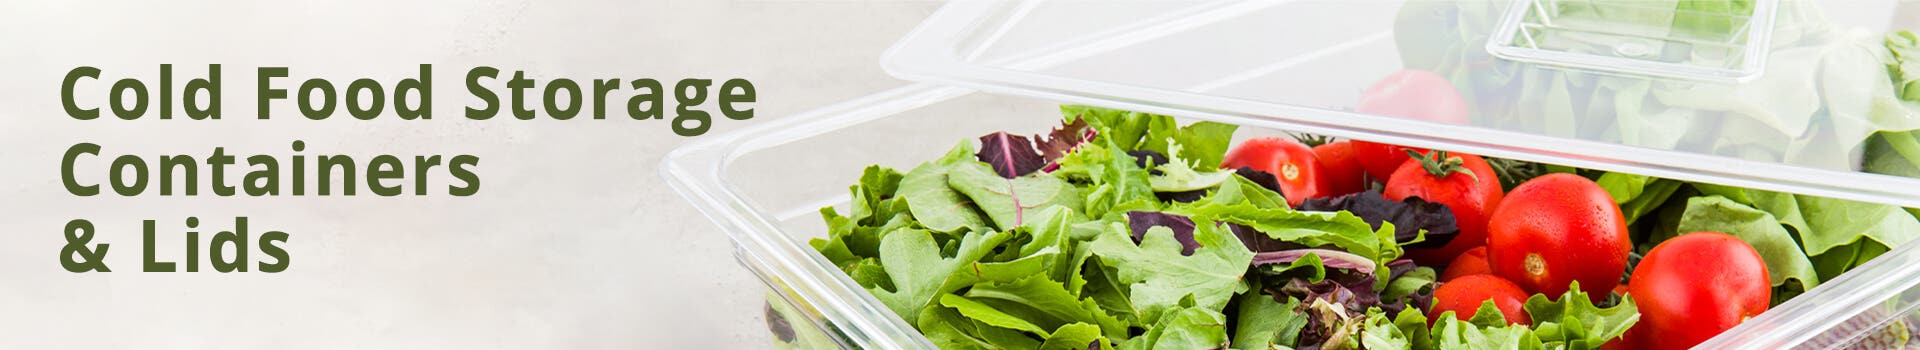 Plastic Cold Food Storage Containers & Lids